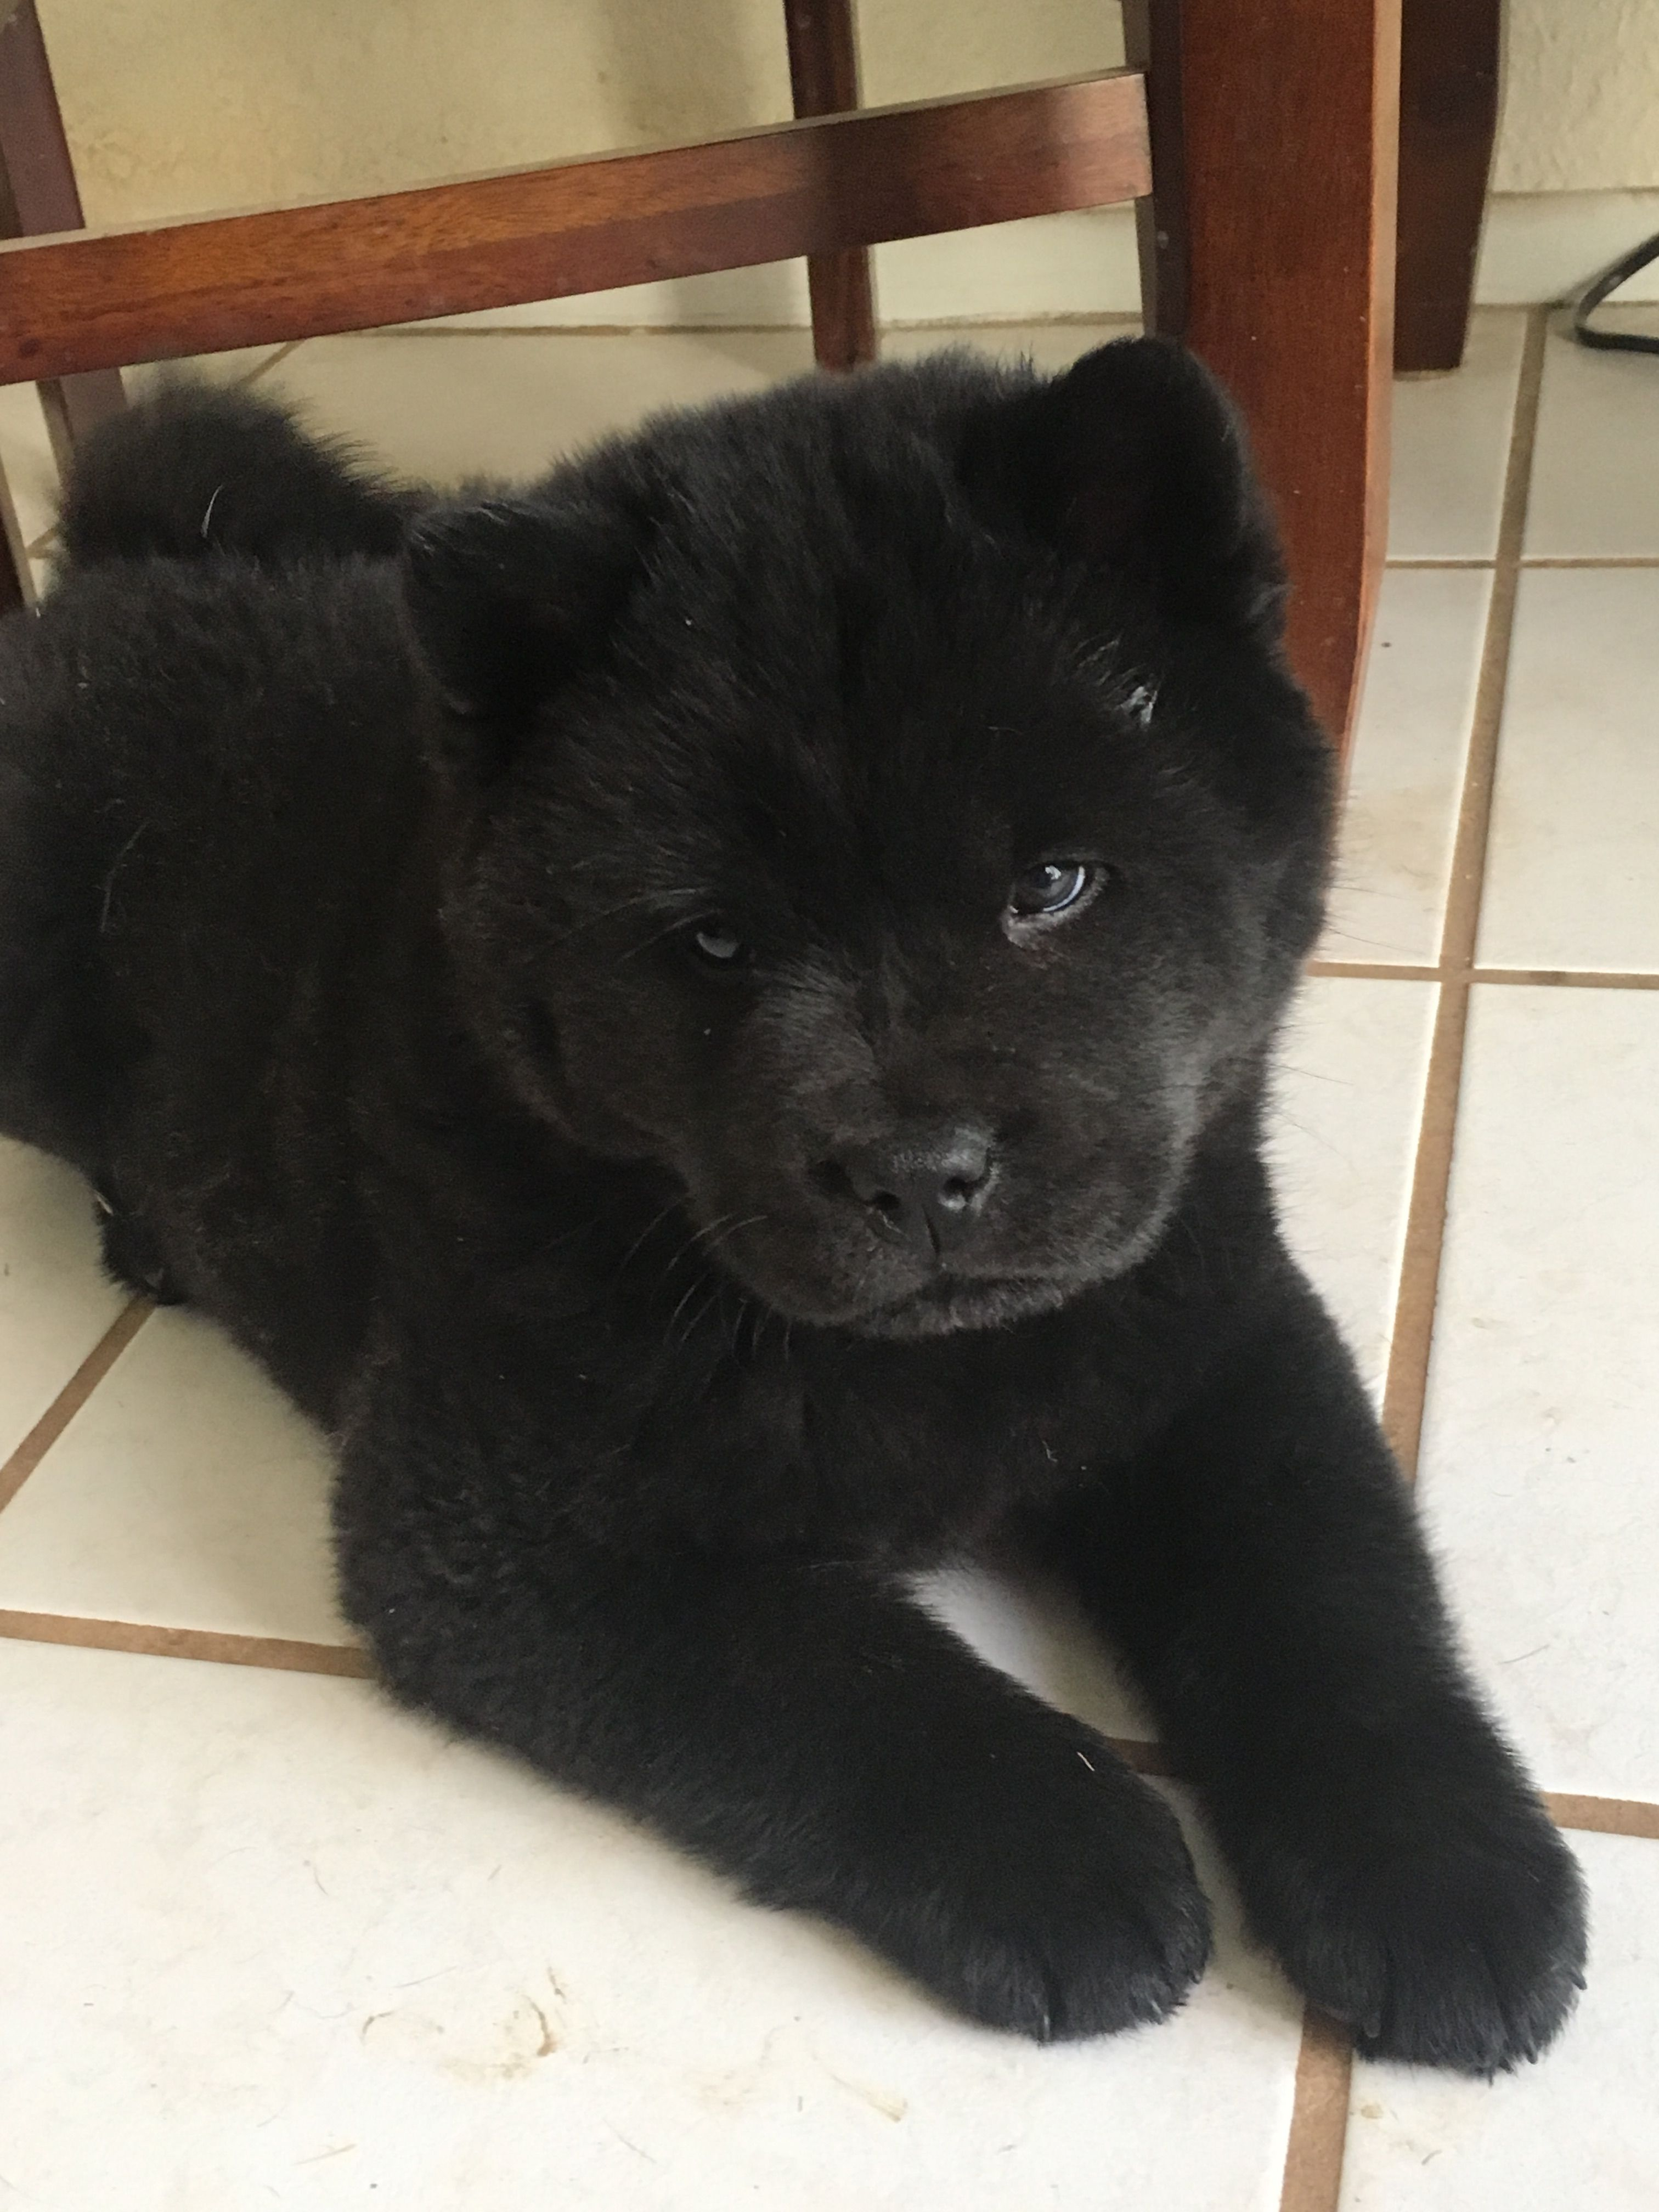 Pups Image By Tammy Anderson Cute Dogs Cute Animals Chow Chow Dogs